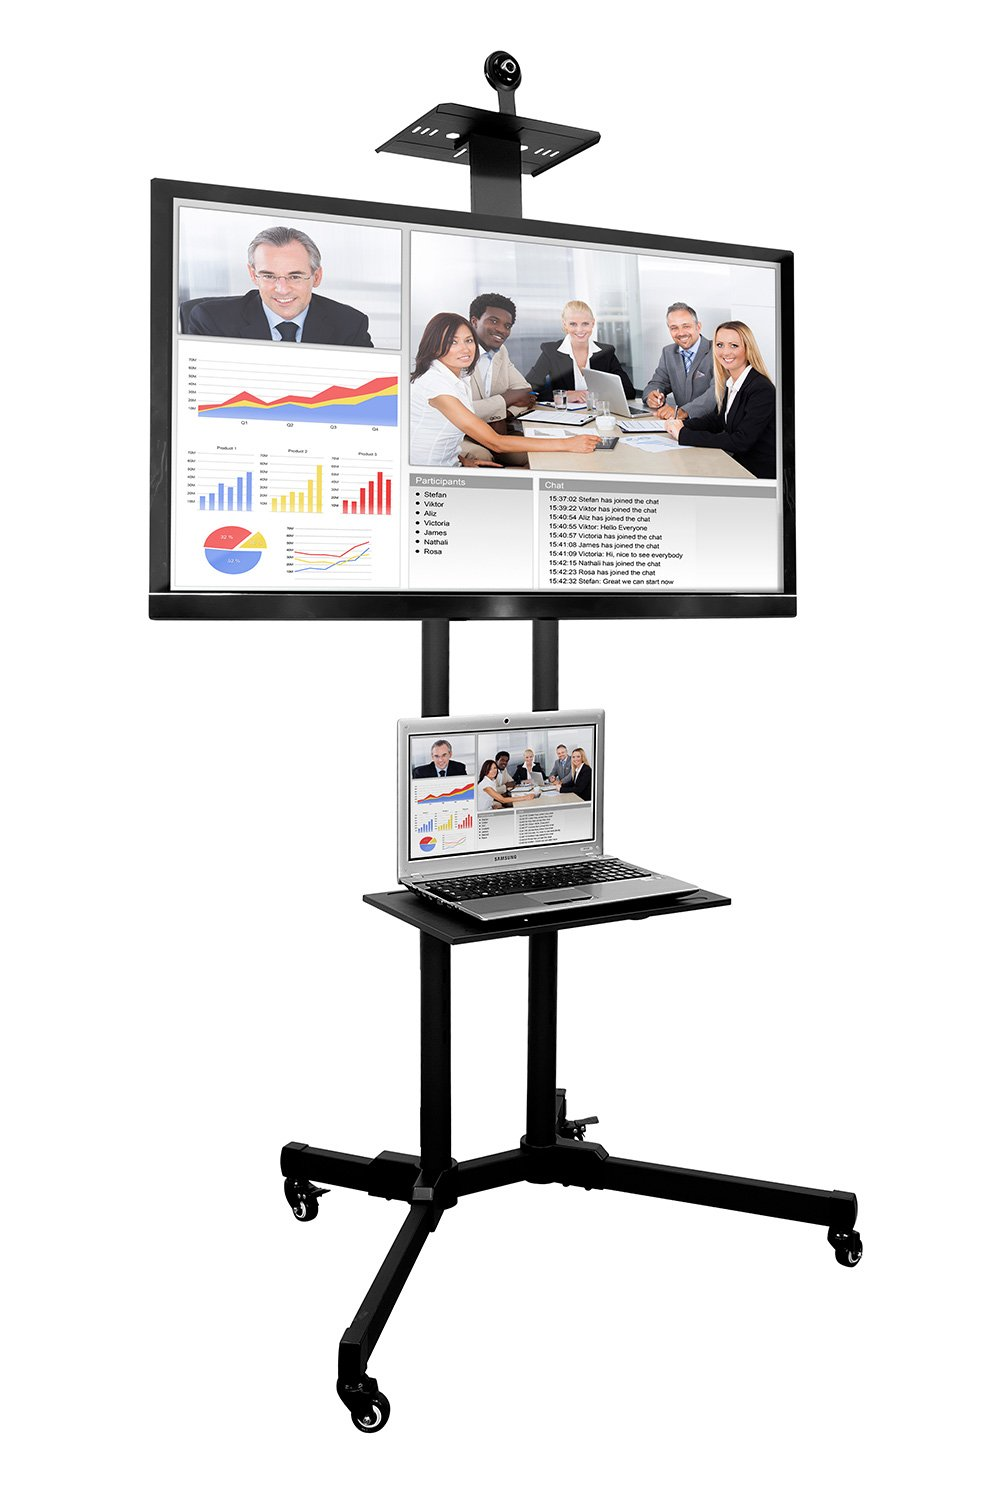 Mount-It! MI-876 TV Cart Mobile TV Stand Wheeled Height Adjustable Flat Screen Television Stands with Rolling Casters and Shelf, VESA Compatible TV Mount Bracket Fits Displays 37 to 70 Inch, 110 Lbs by Mount-It!